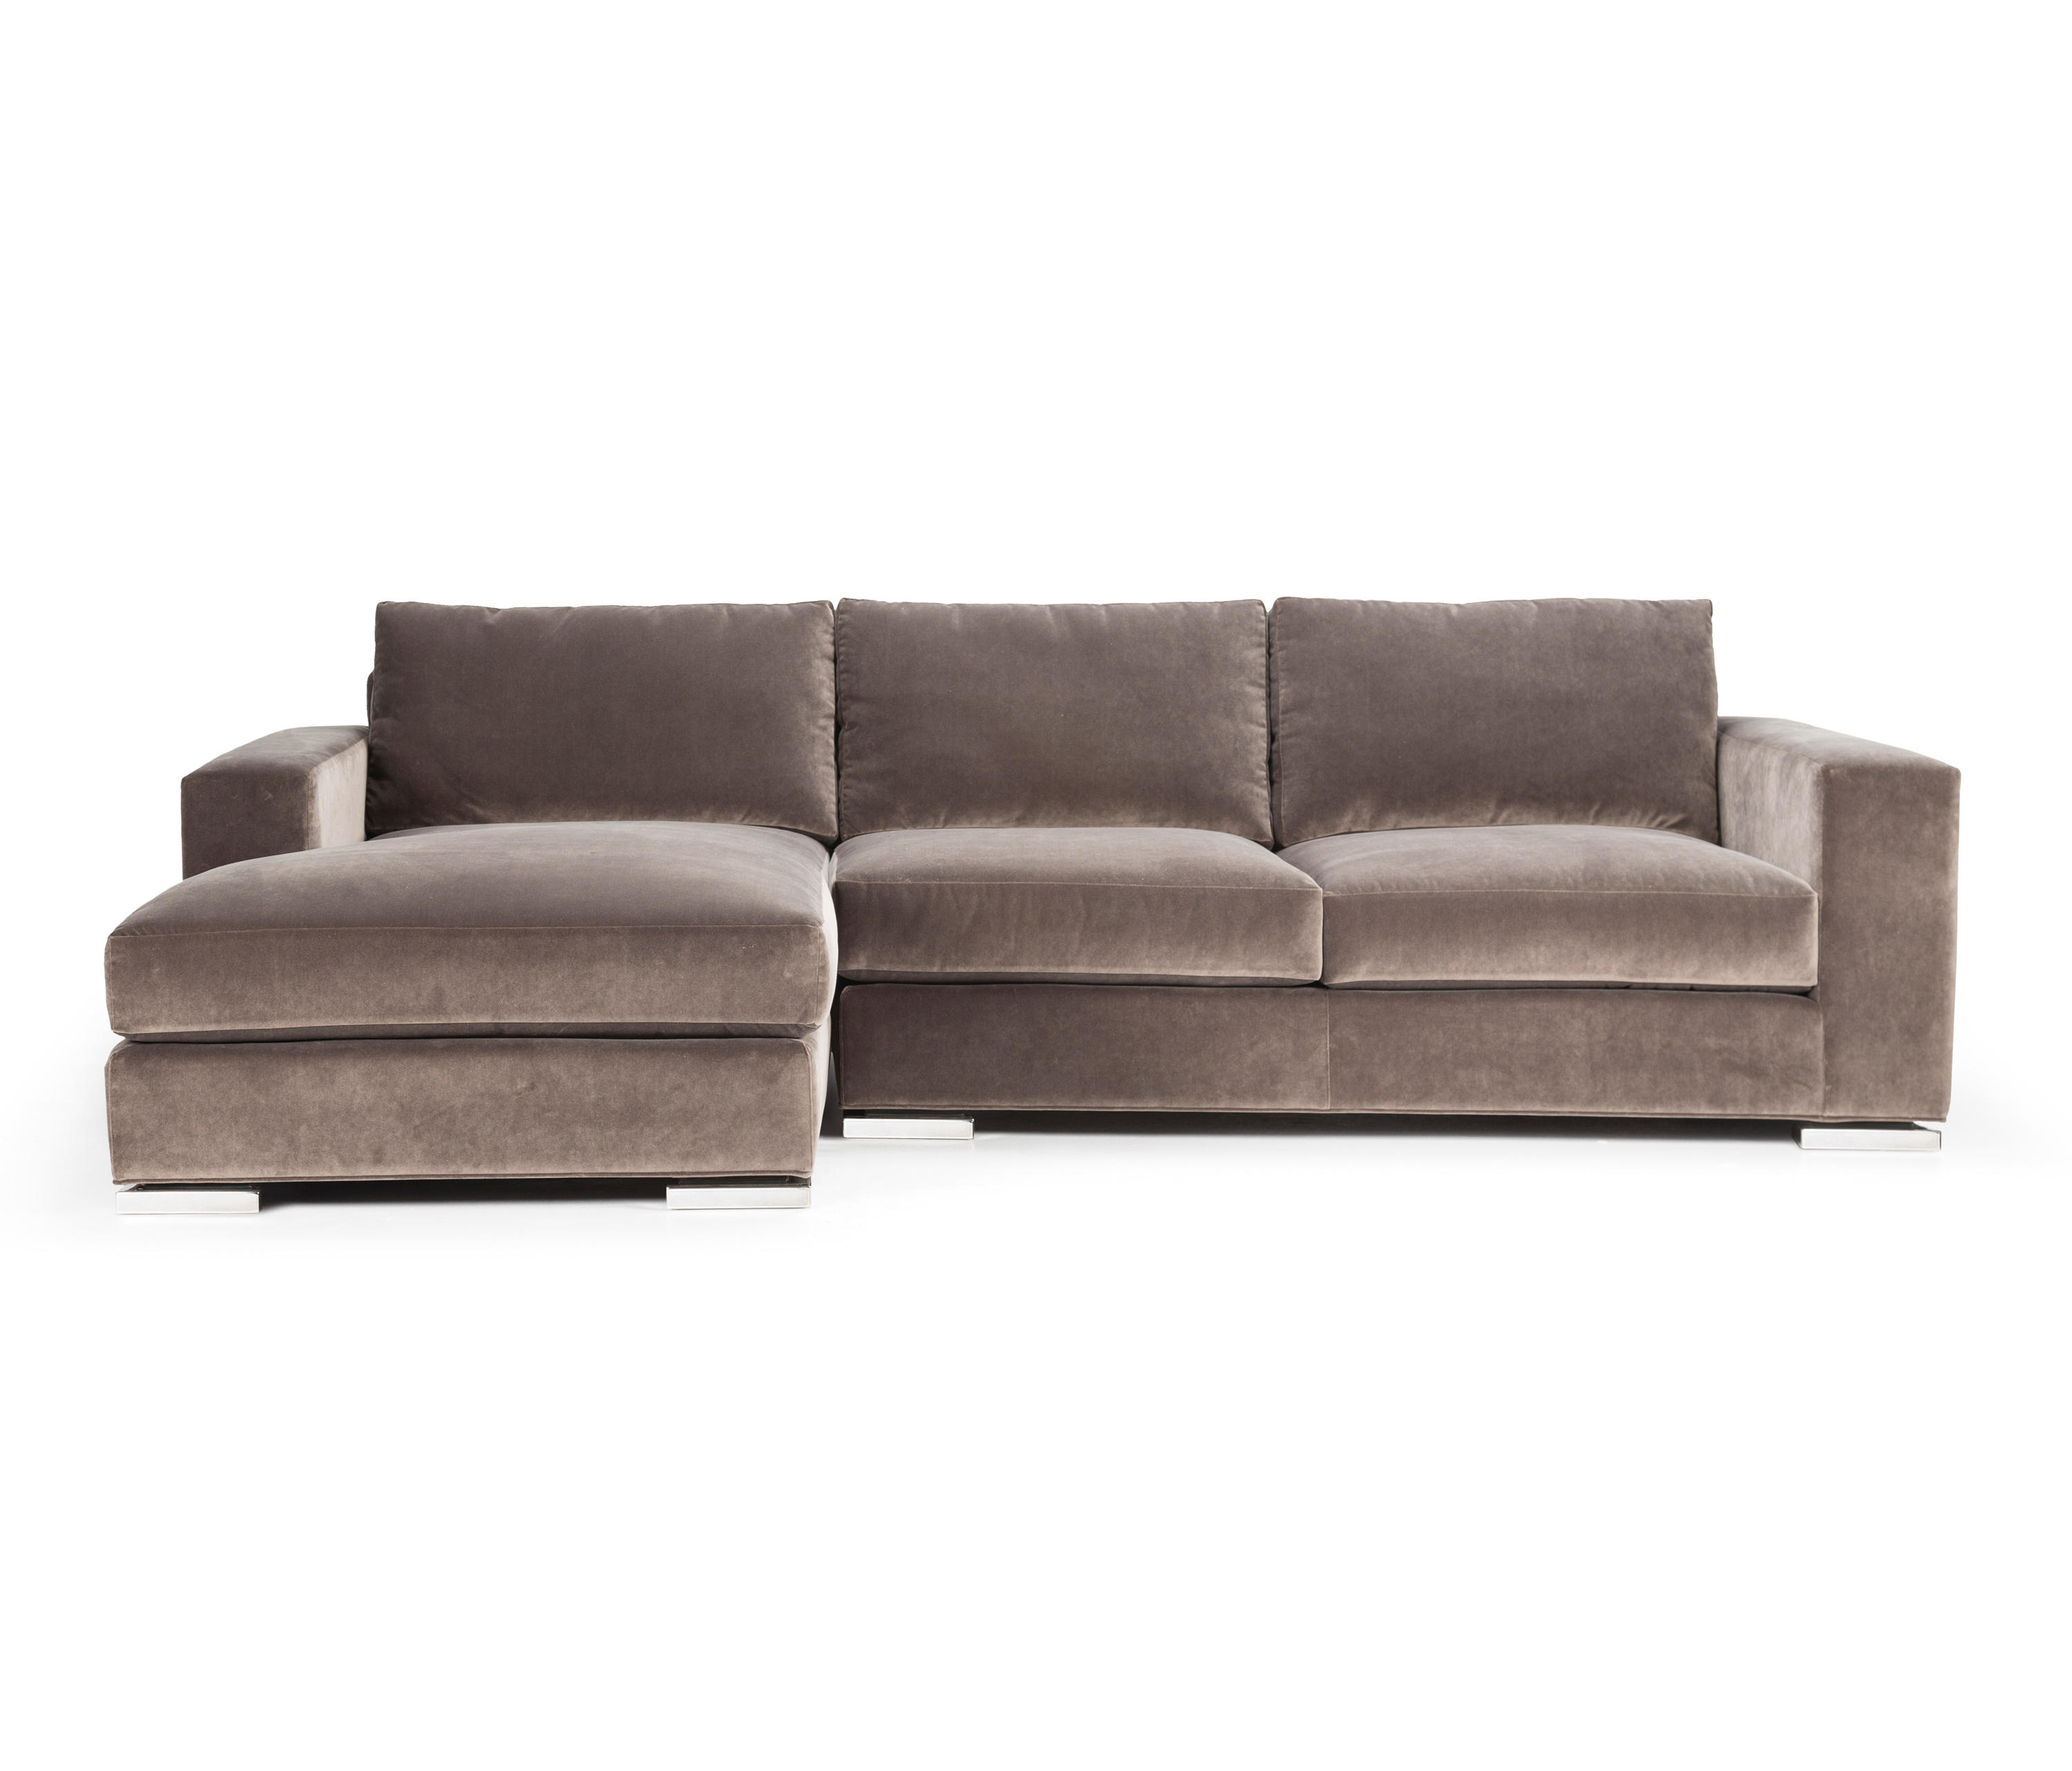 number sofas monticello casual essentials sofa upholstery belfort sectional item products